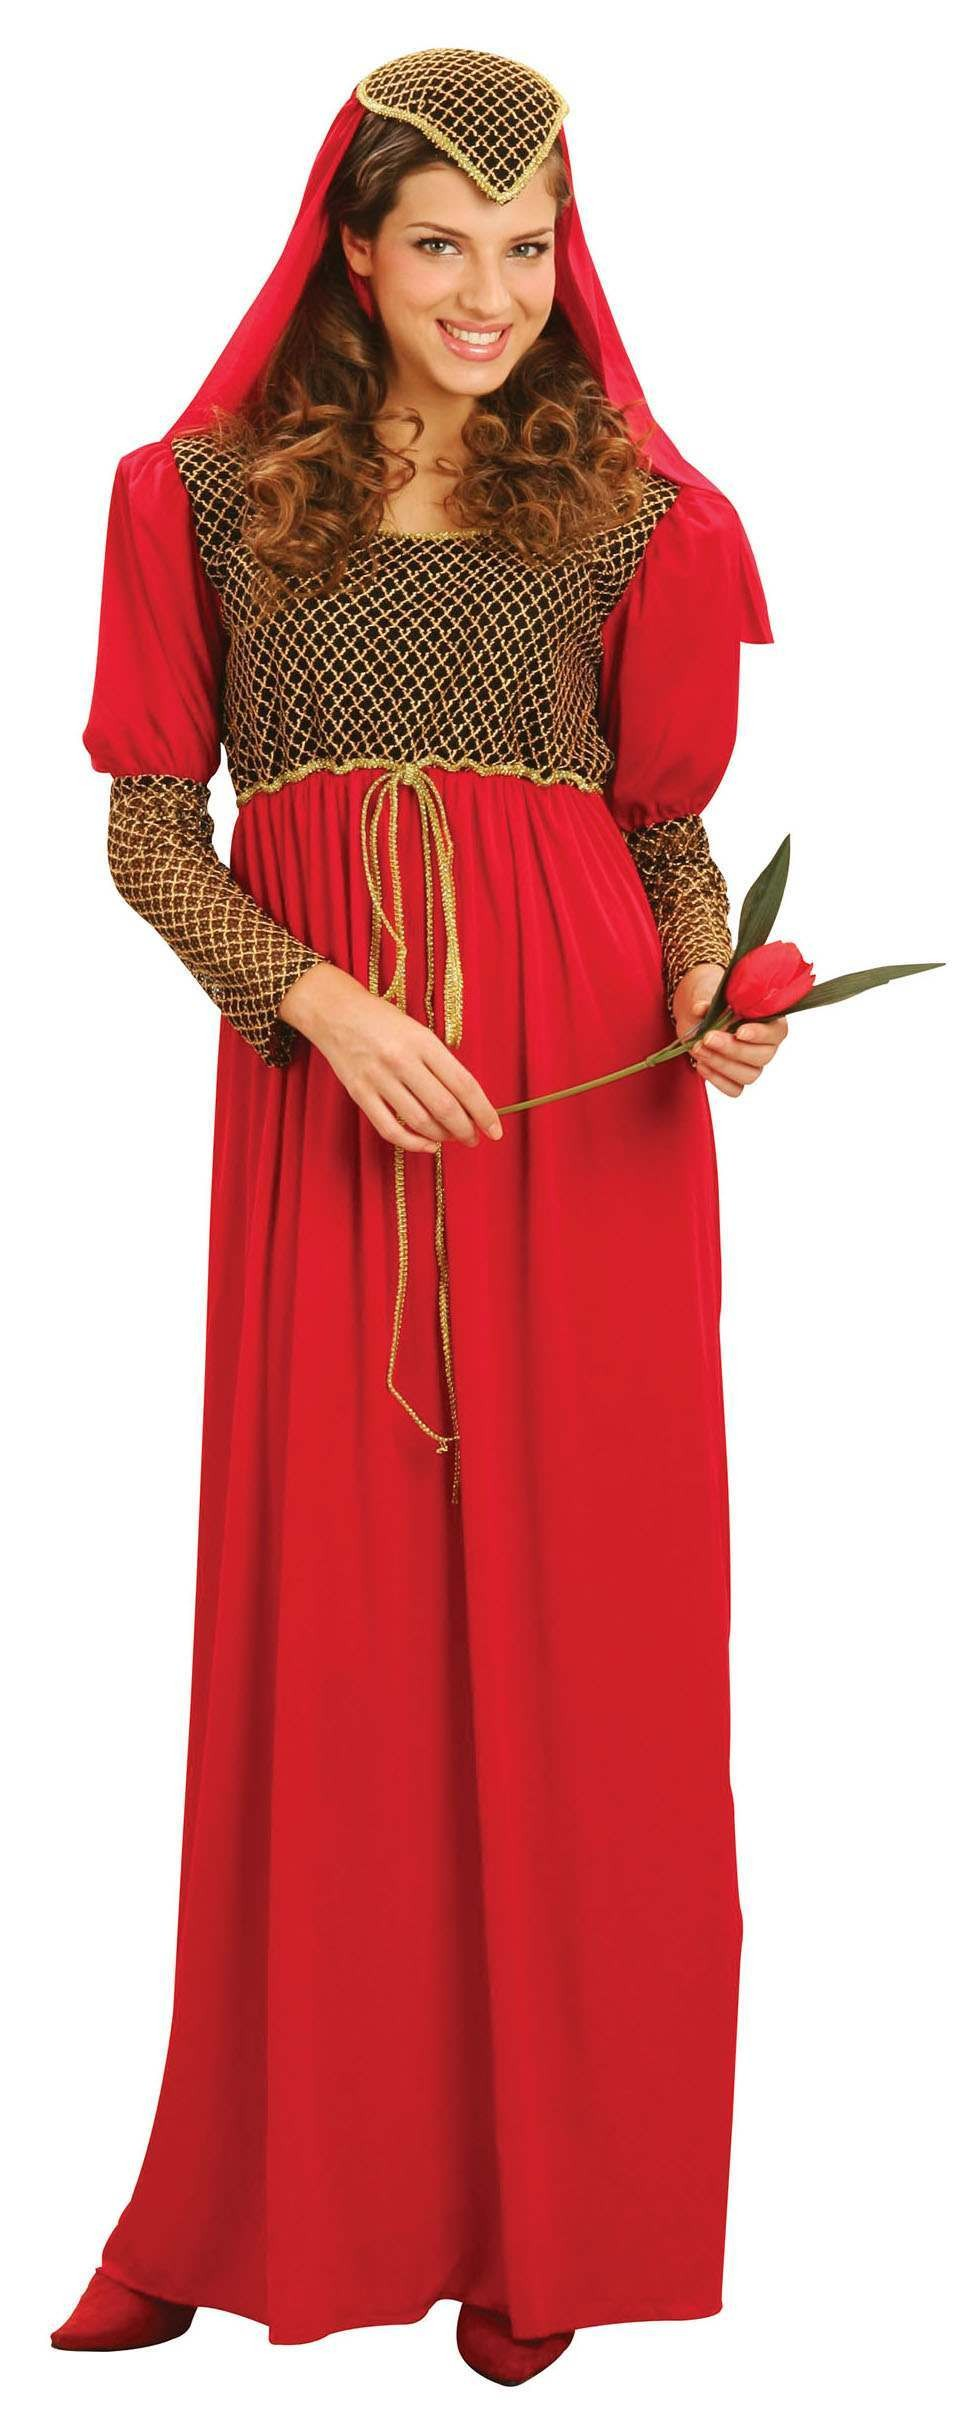 Ladies Red Classic Romantic Juliet Fancy Dress Costume